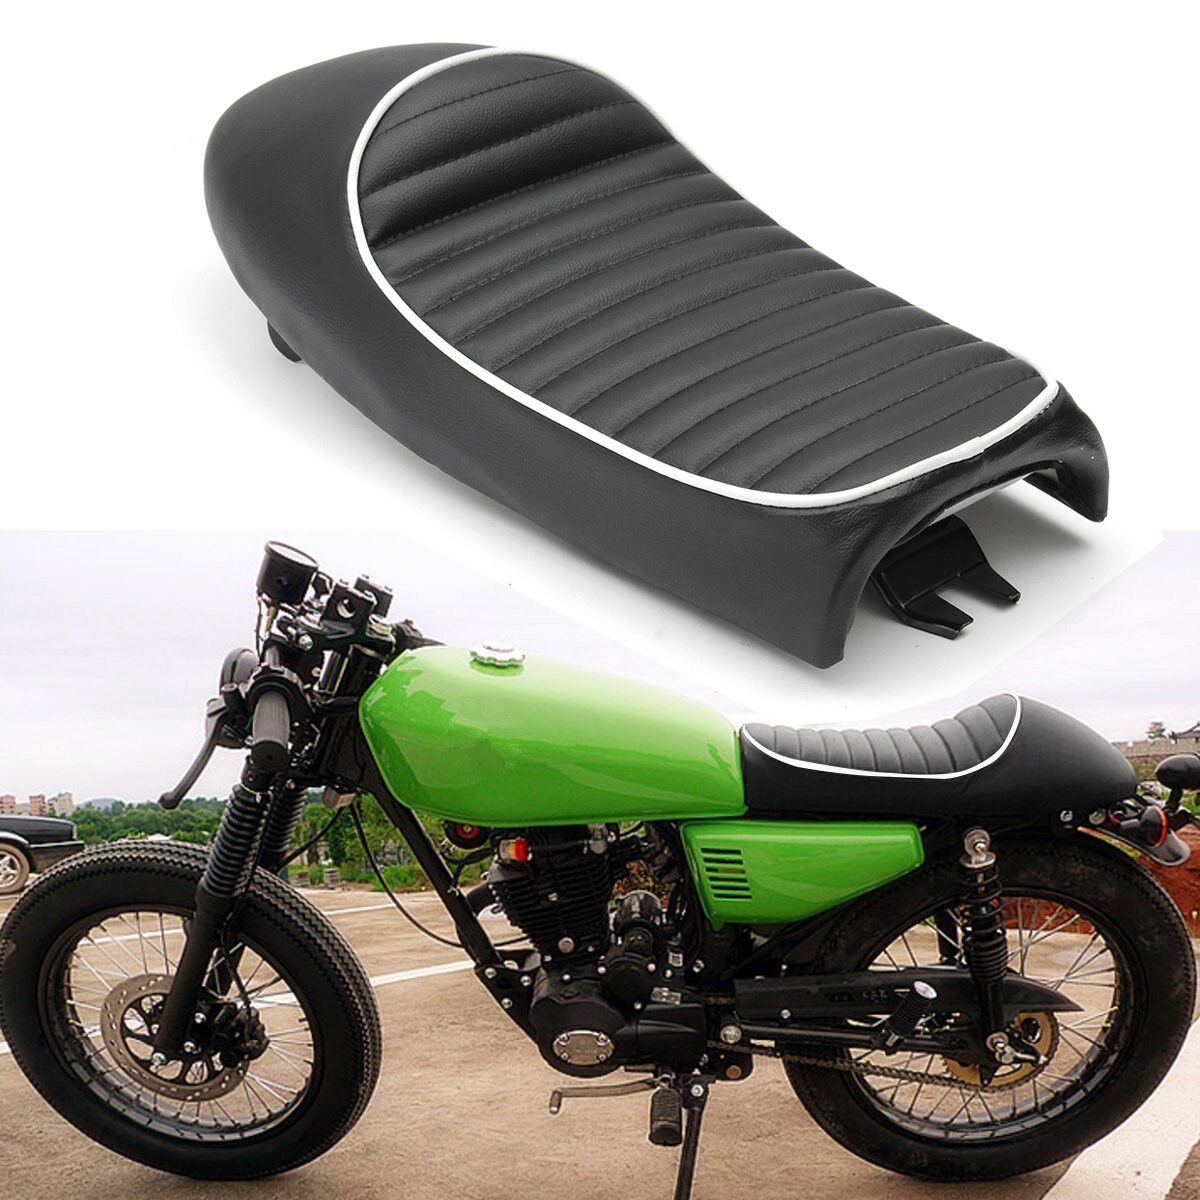 US $23 52 49% OFF 1 Set Black Motorcycle Vintage Hump Cafe Racer Seat Decor  Covers For Honda CB For SUZUKI /GR650/GS/GT/TU250/GN125/GN250/GN400 on